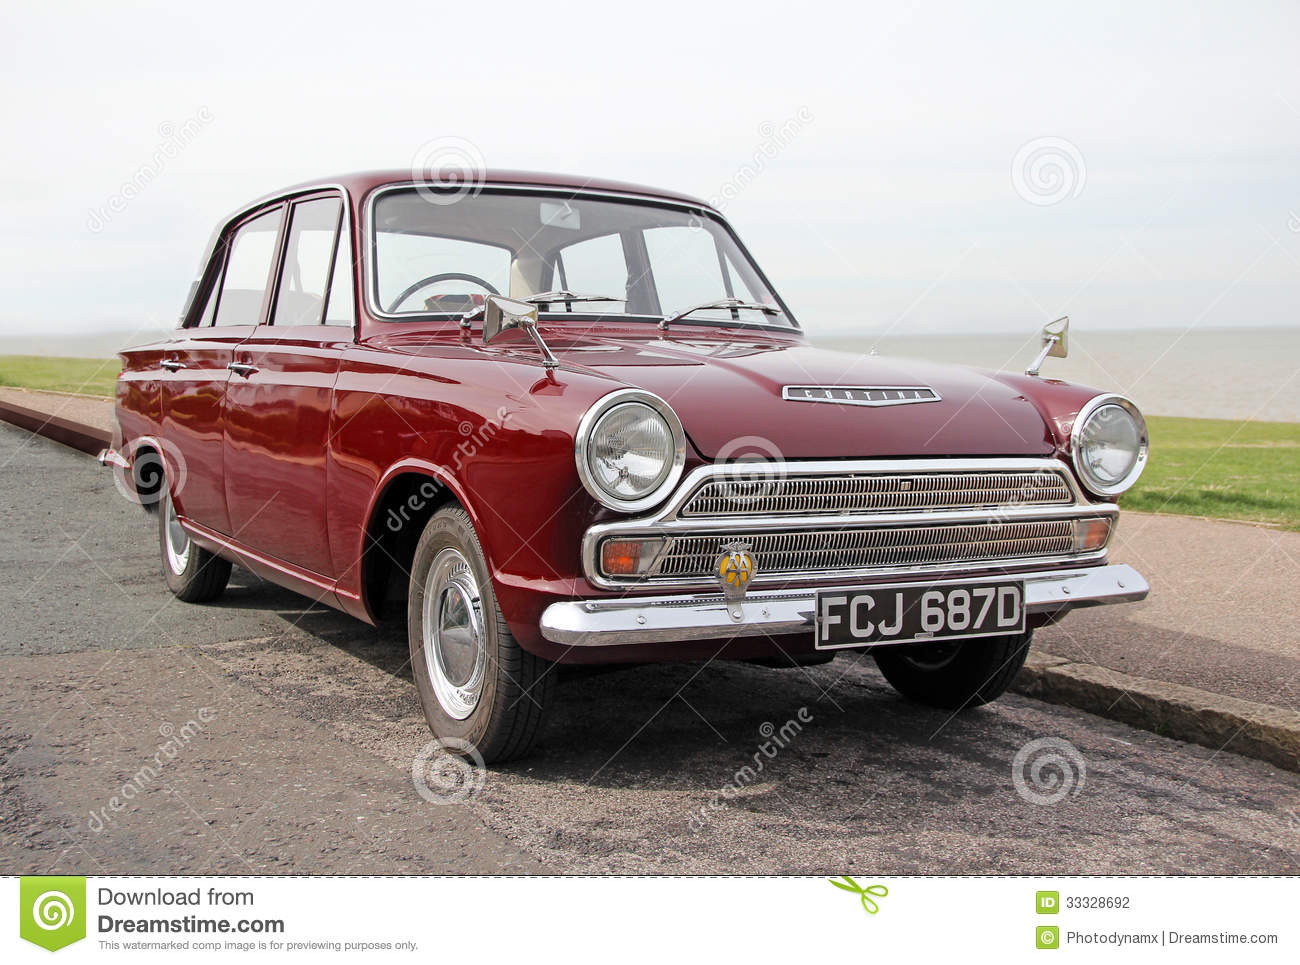 Vintage ford cortina mk1 car editorial photography image for Cortinas vintage